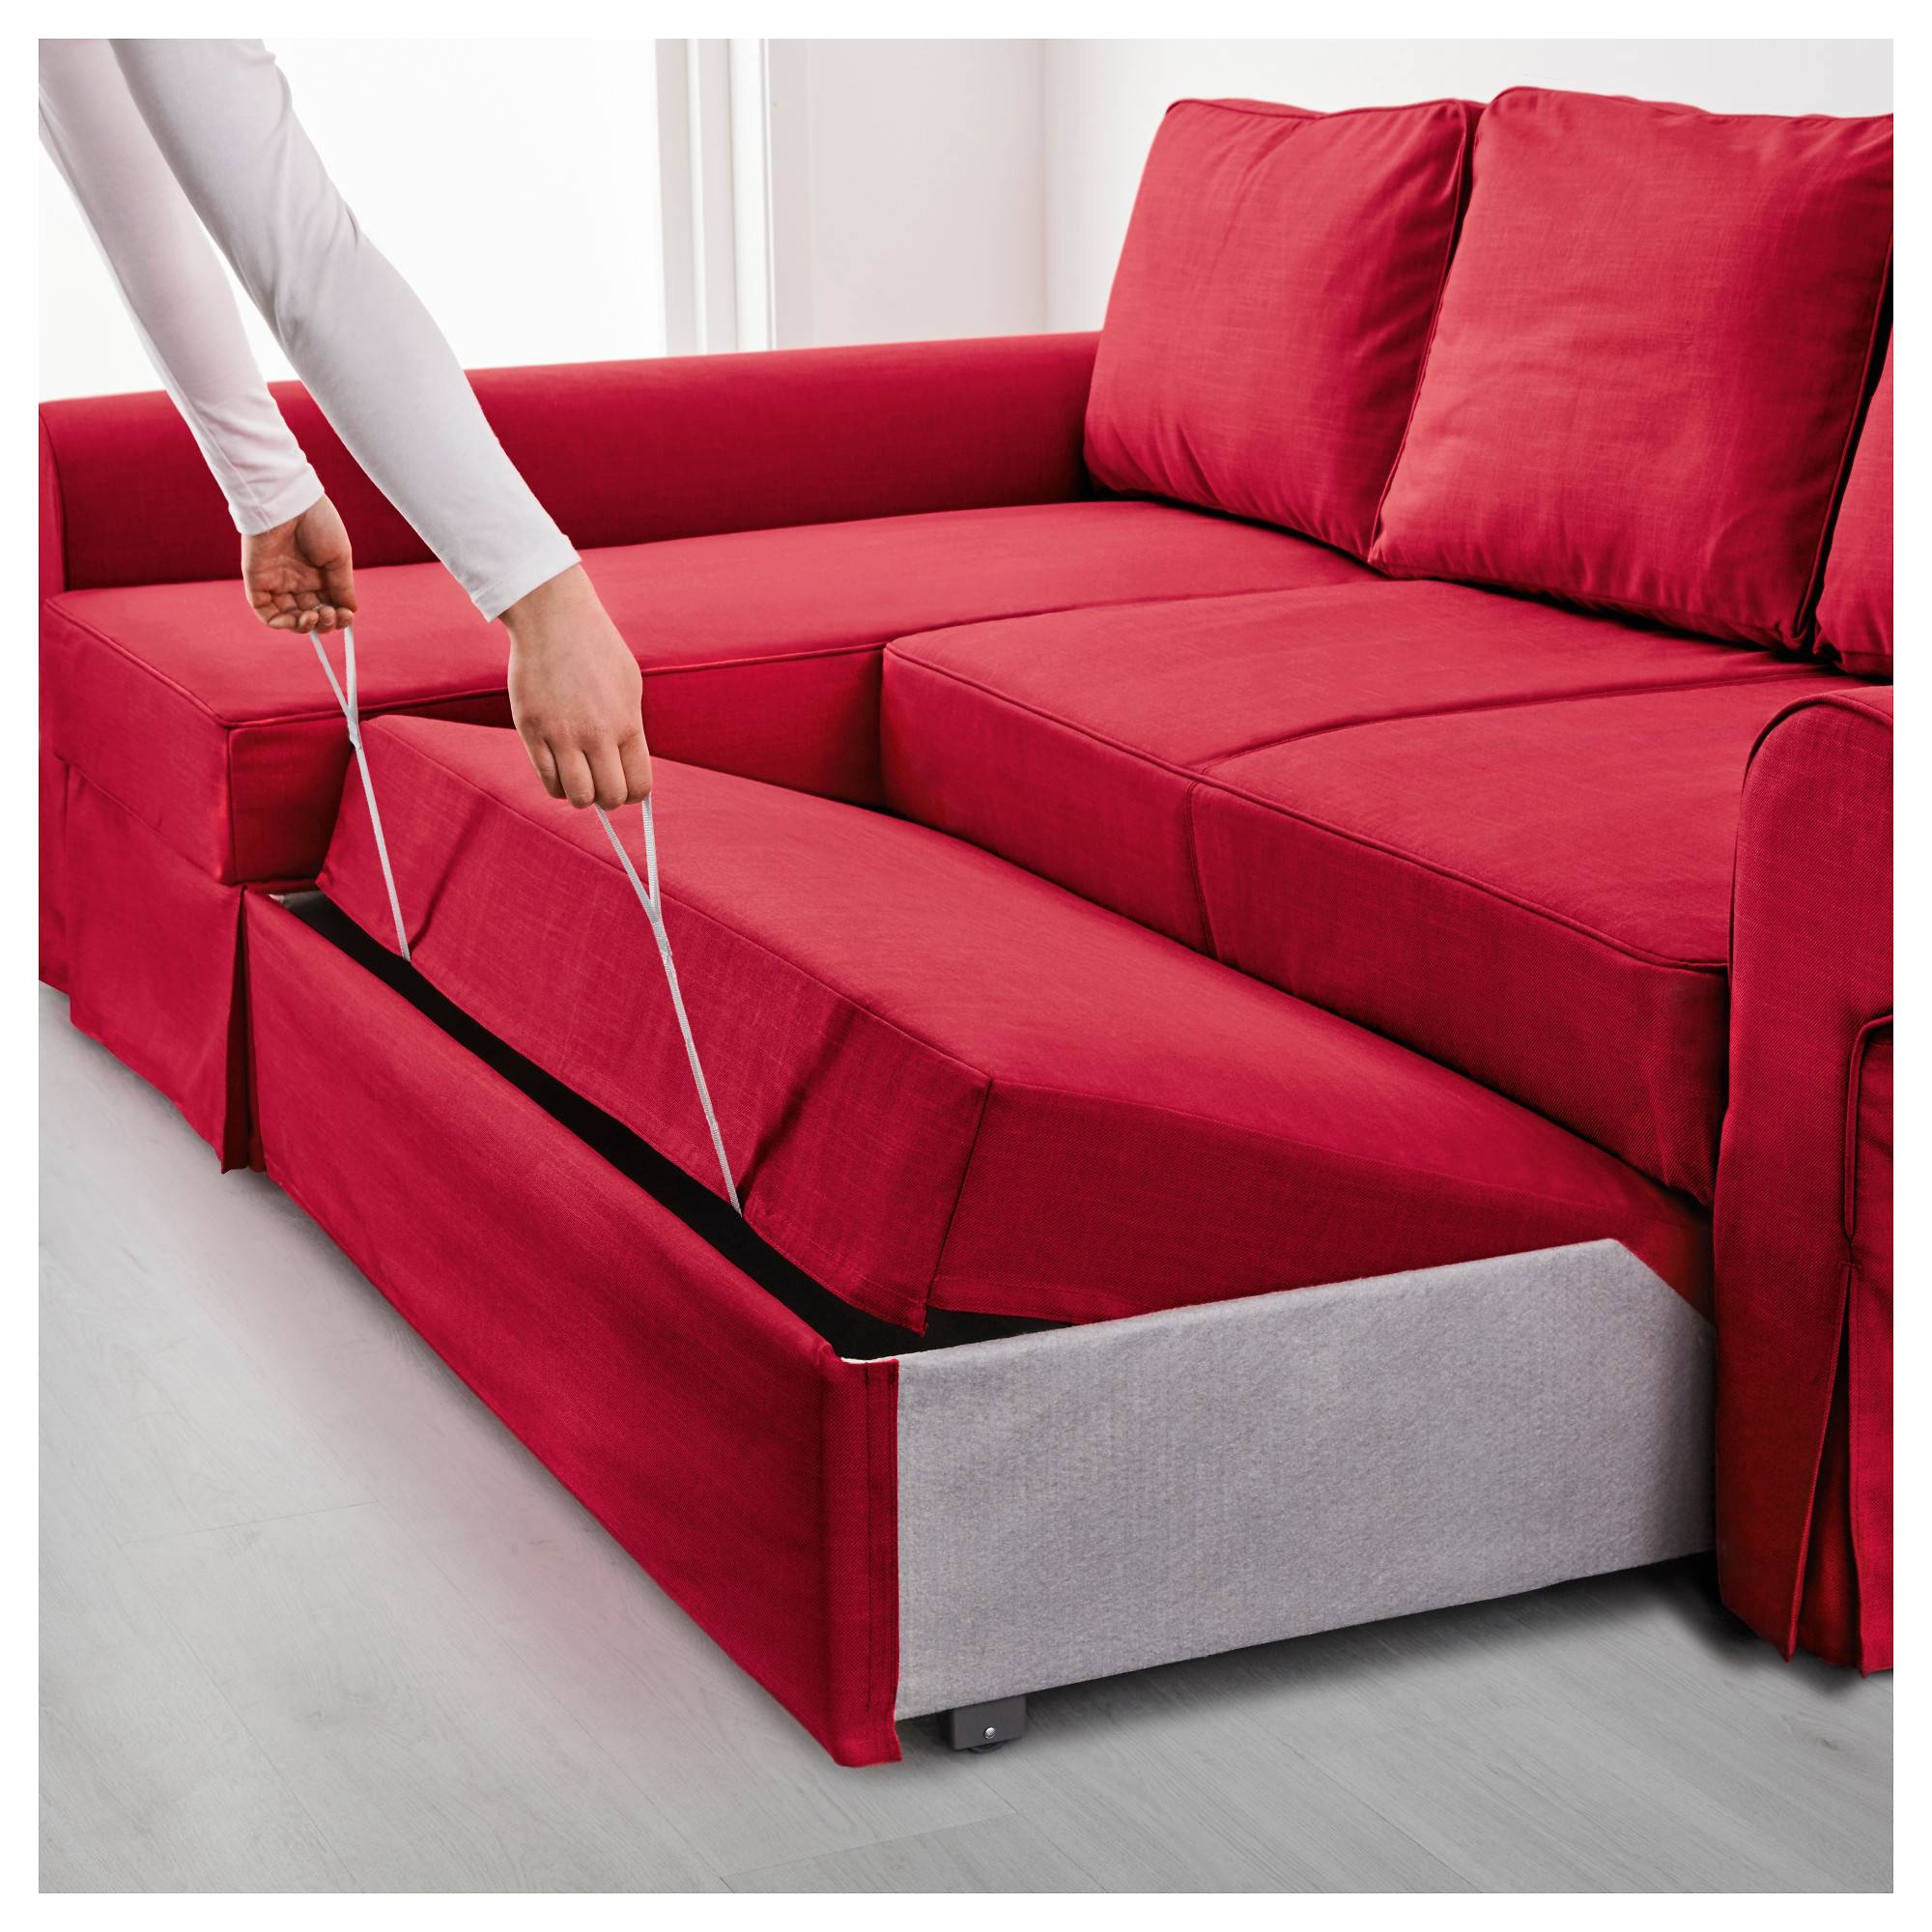 Backabro Sofa Bed With Chaise Longue Nordvalla Red - Ikea with regard to Chaise Longue Sofa Beds (Image 2 of 15)